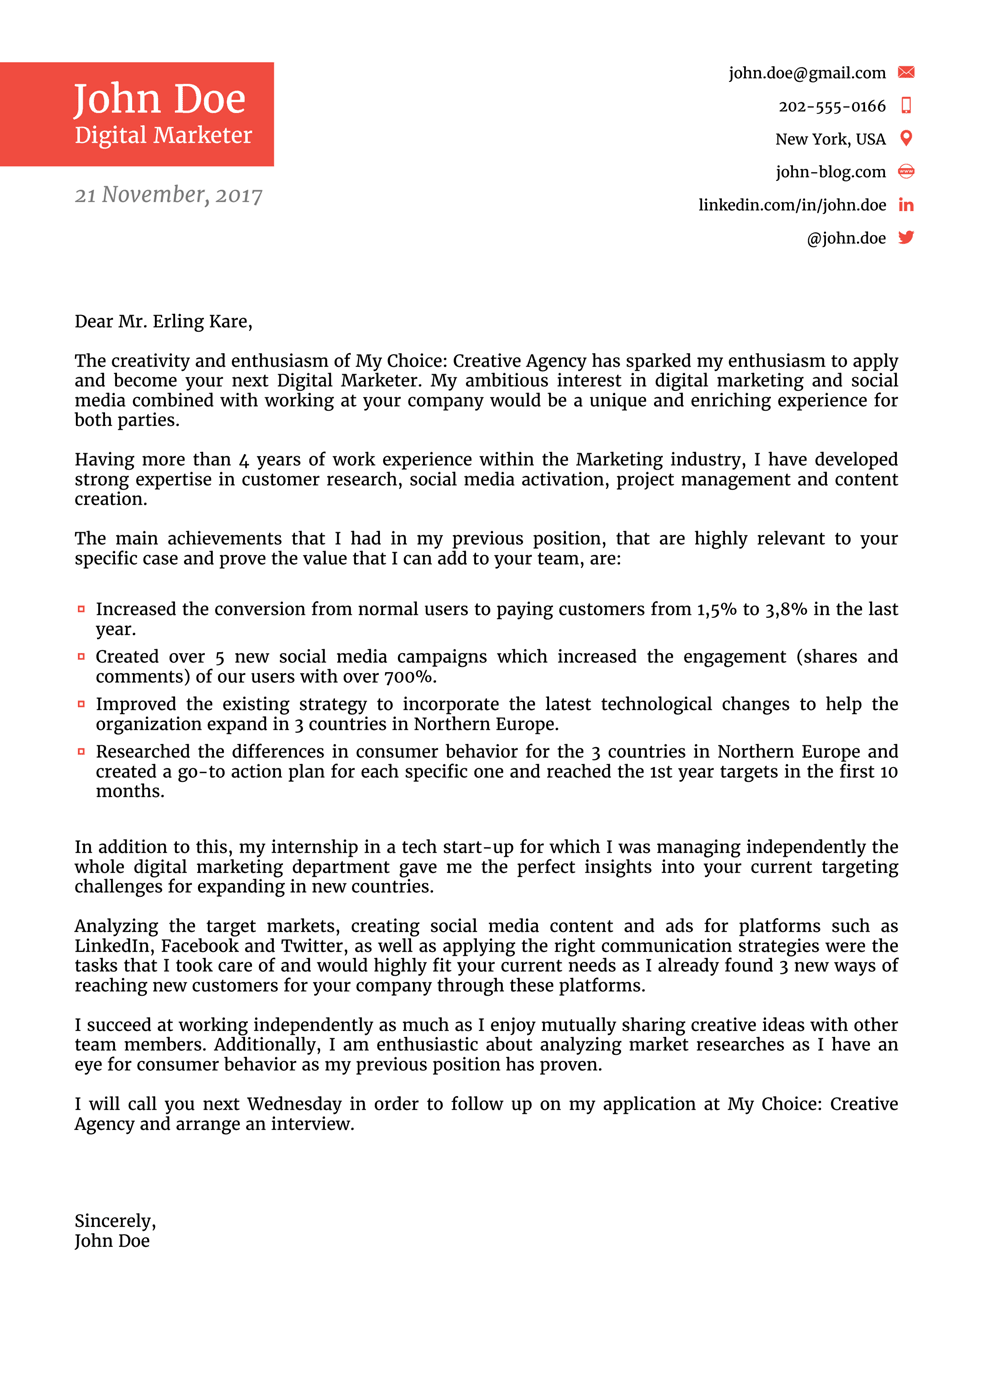 functional-cover-letter-template Template Cover Letter Mrp on free pdf, just basic, sample email, to write, google docs, microsoft office,